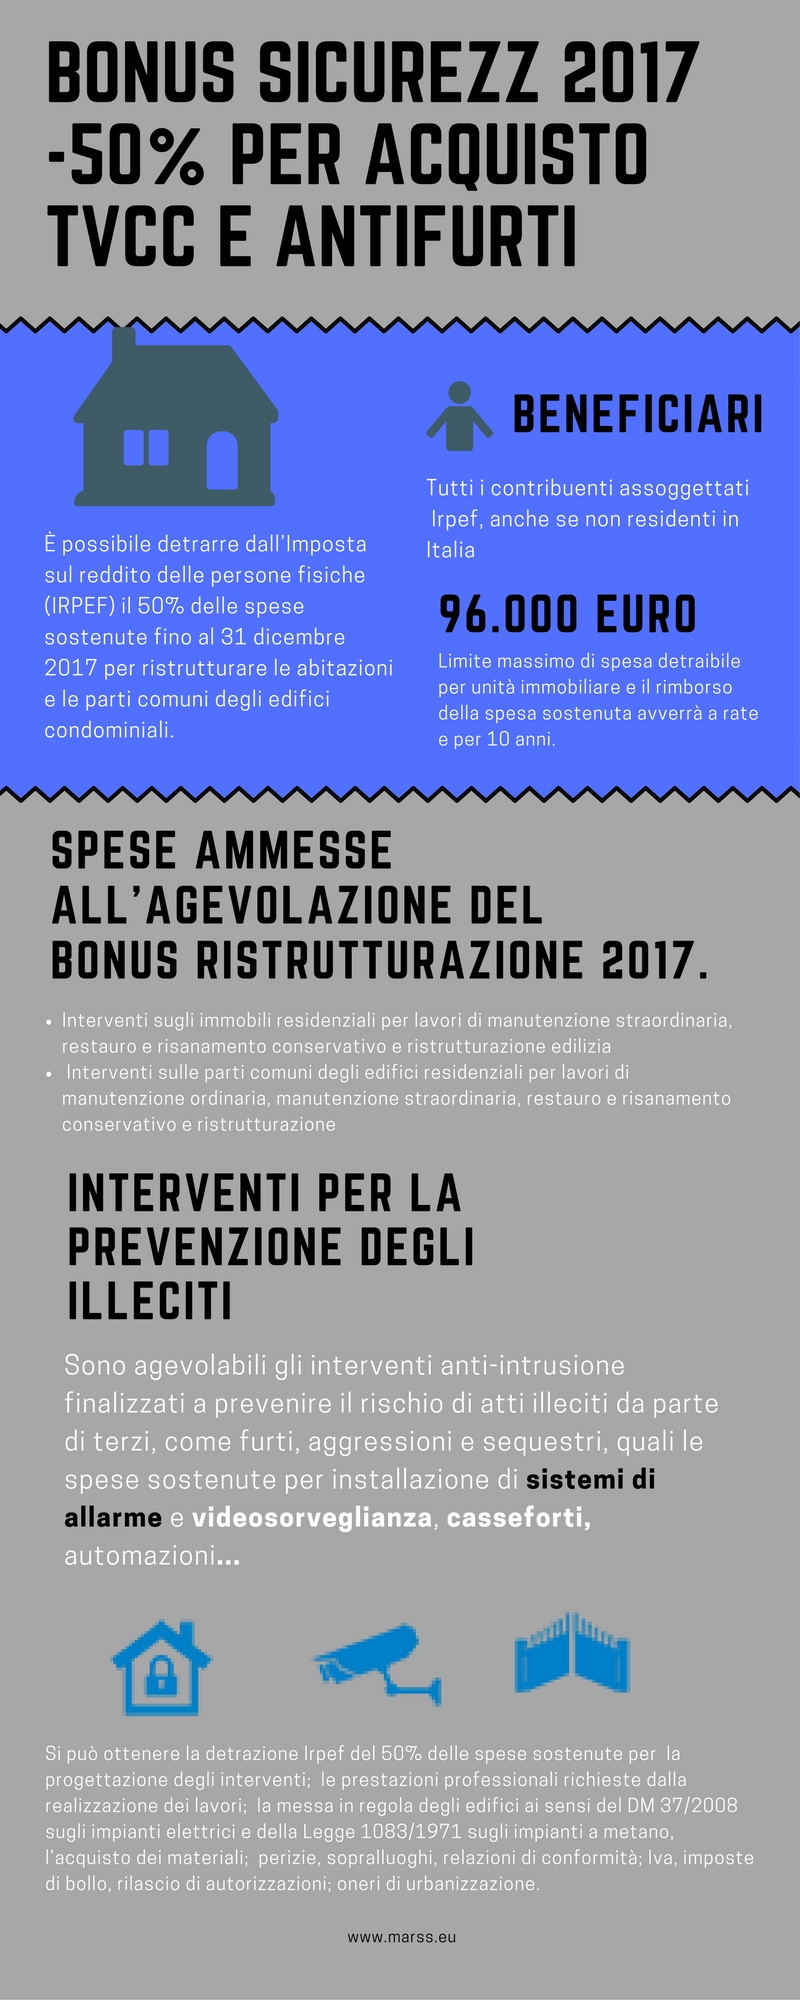 bouns sicurezza 2017